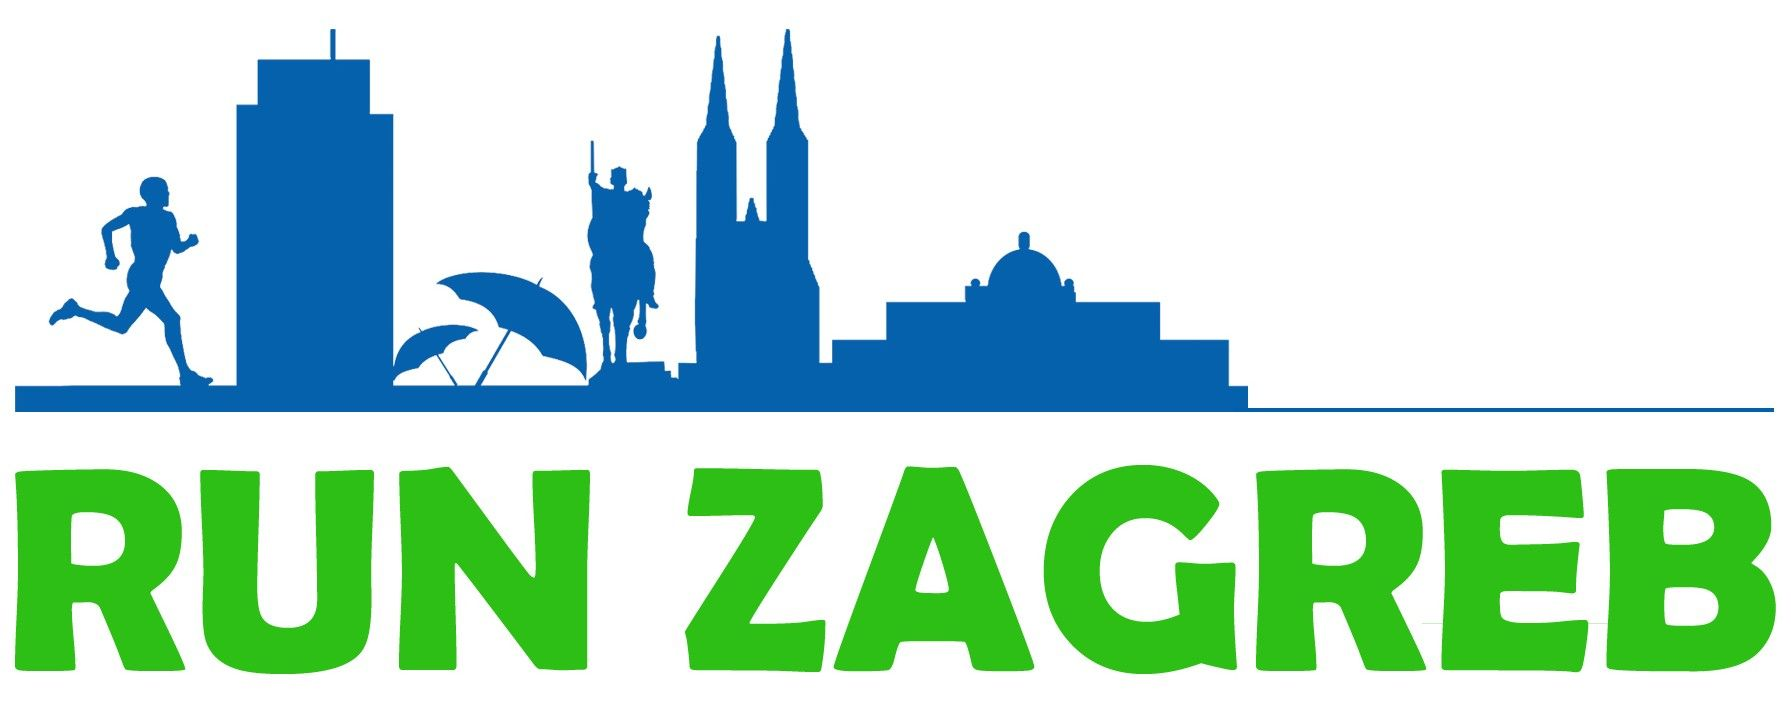 Things To Do In One Day In Zagreb Walking Tour And Tips Walking Tour Europe Travel Destinations Europe Travel Guide